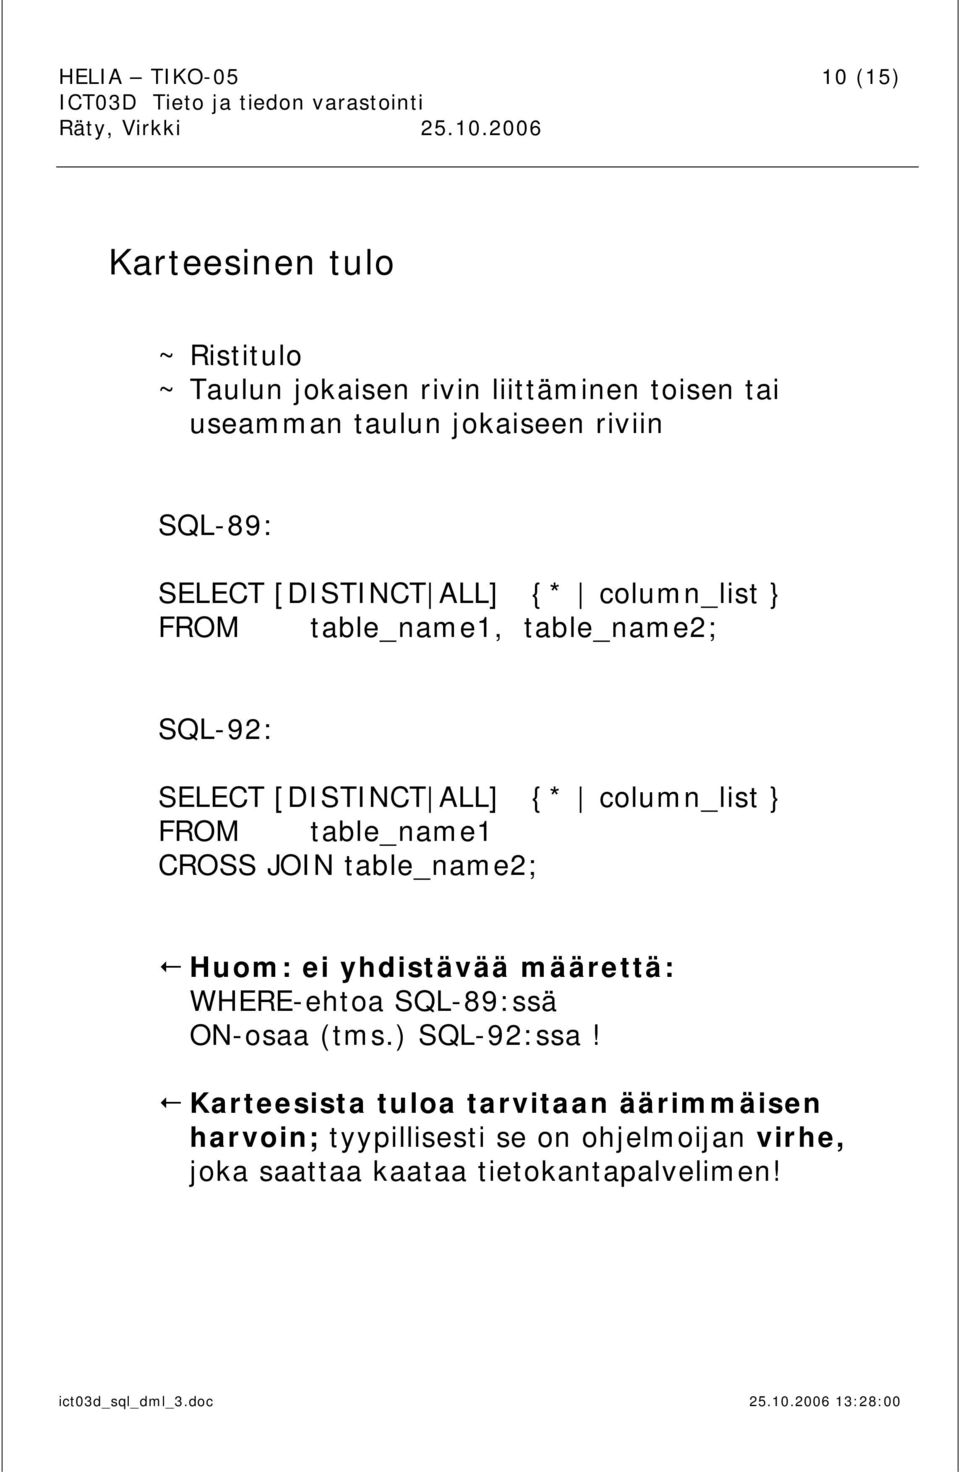 column_list } FROM table_name1 CROSS JOIN table_name2; Huom: ei yhdistävää määrettä: WHERE-ehtoa SQL-89:ssä ON-osaa (tms.